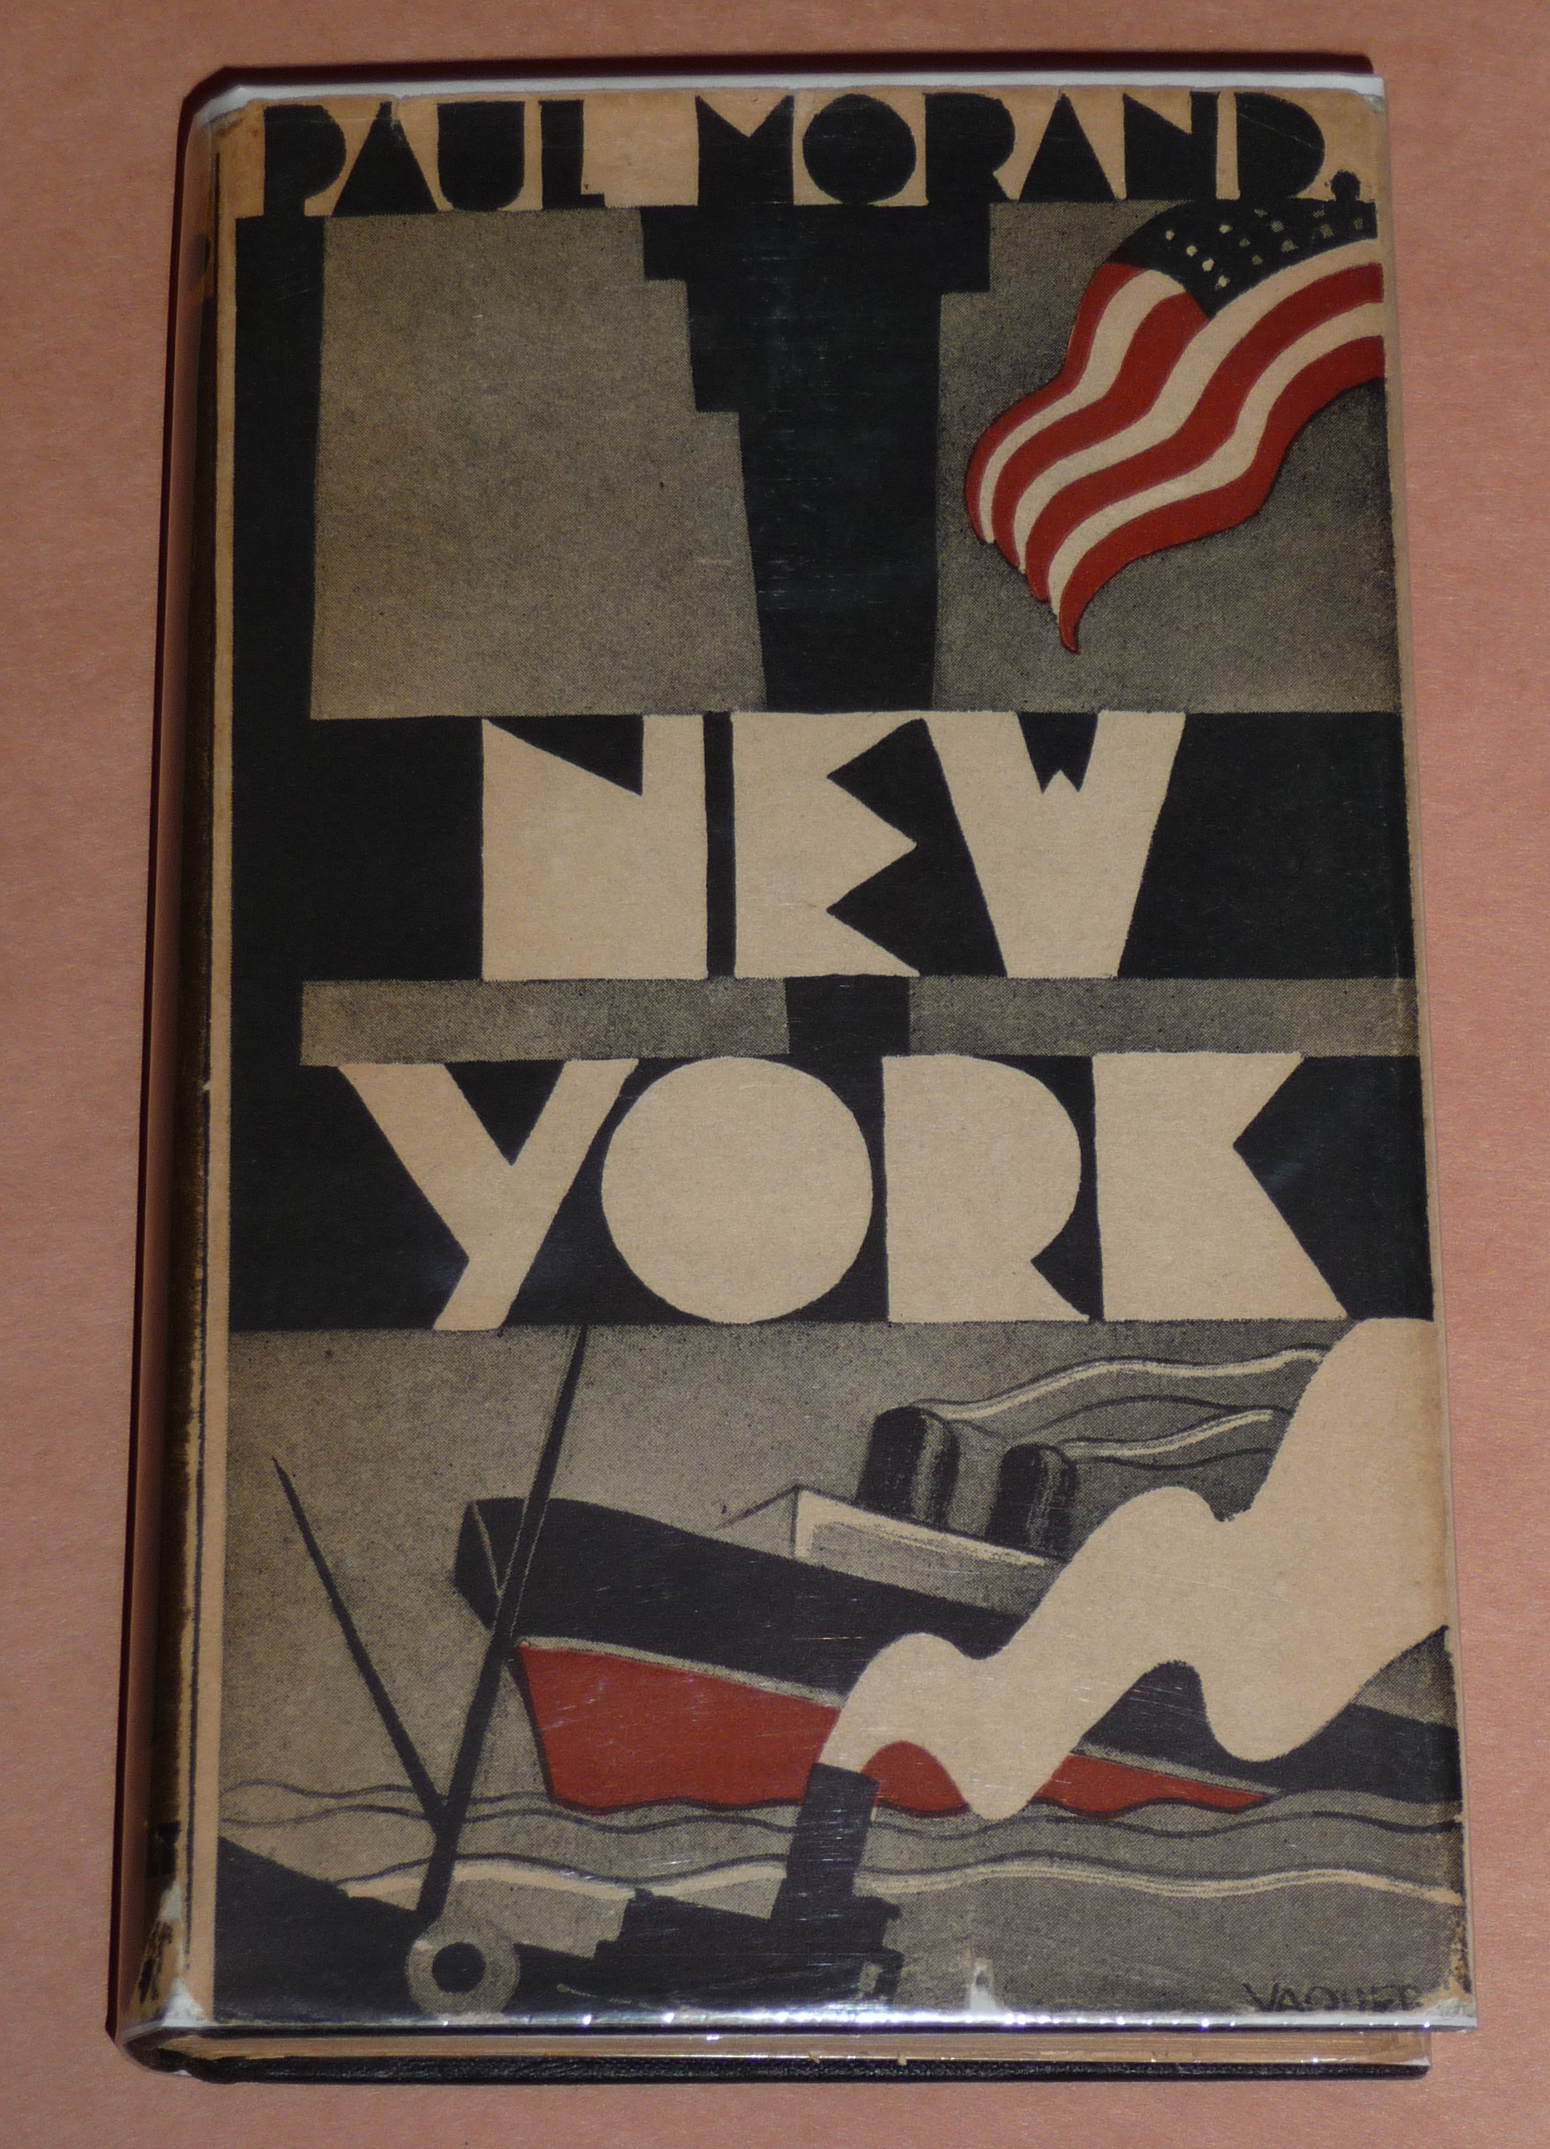 Part 2 More Vintage New York City Books With Great Art Deco Dust Jackets